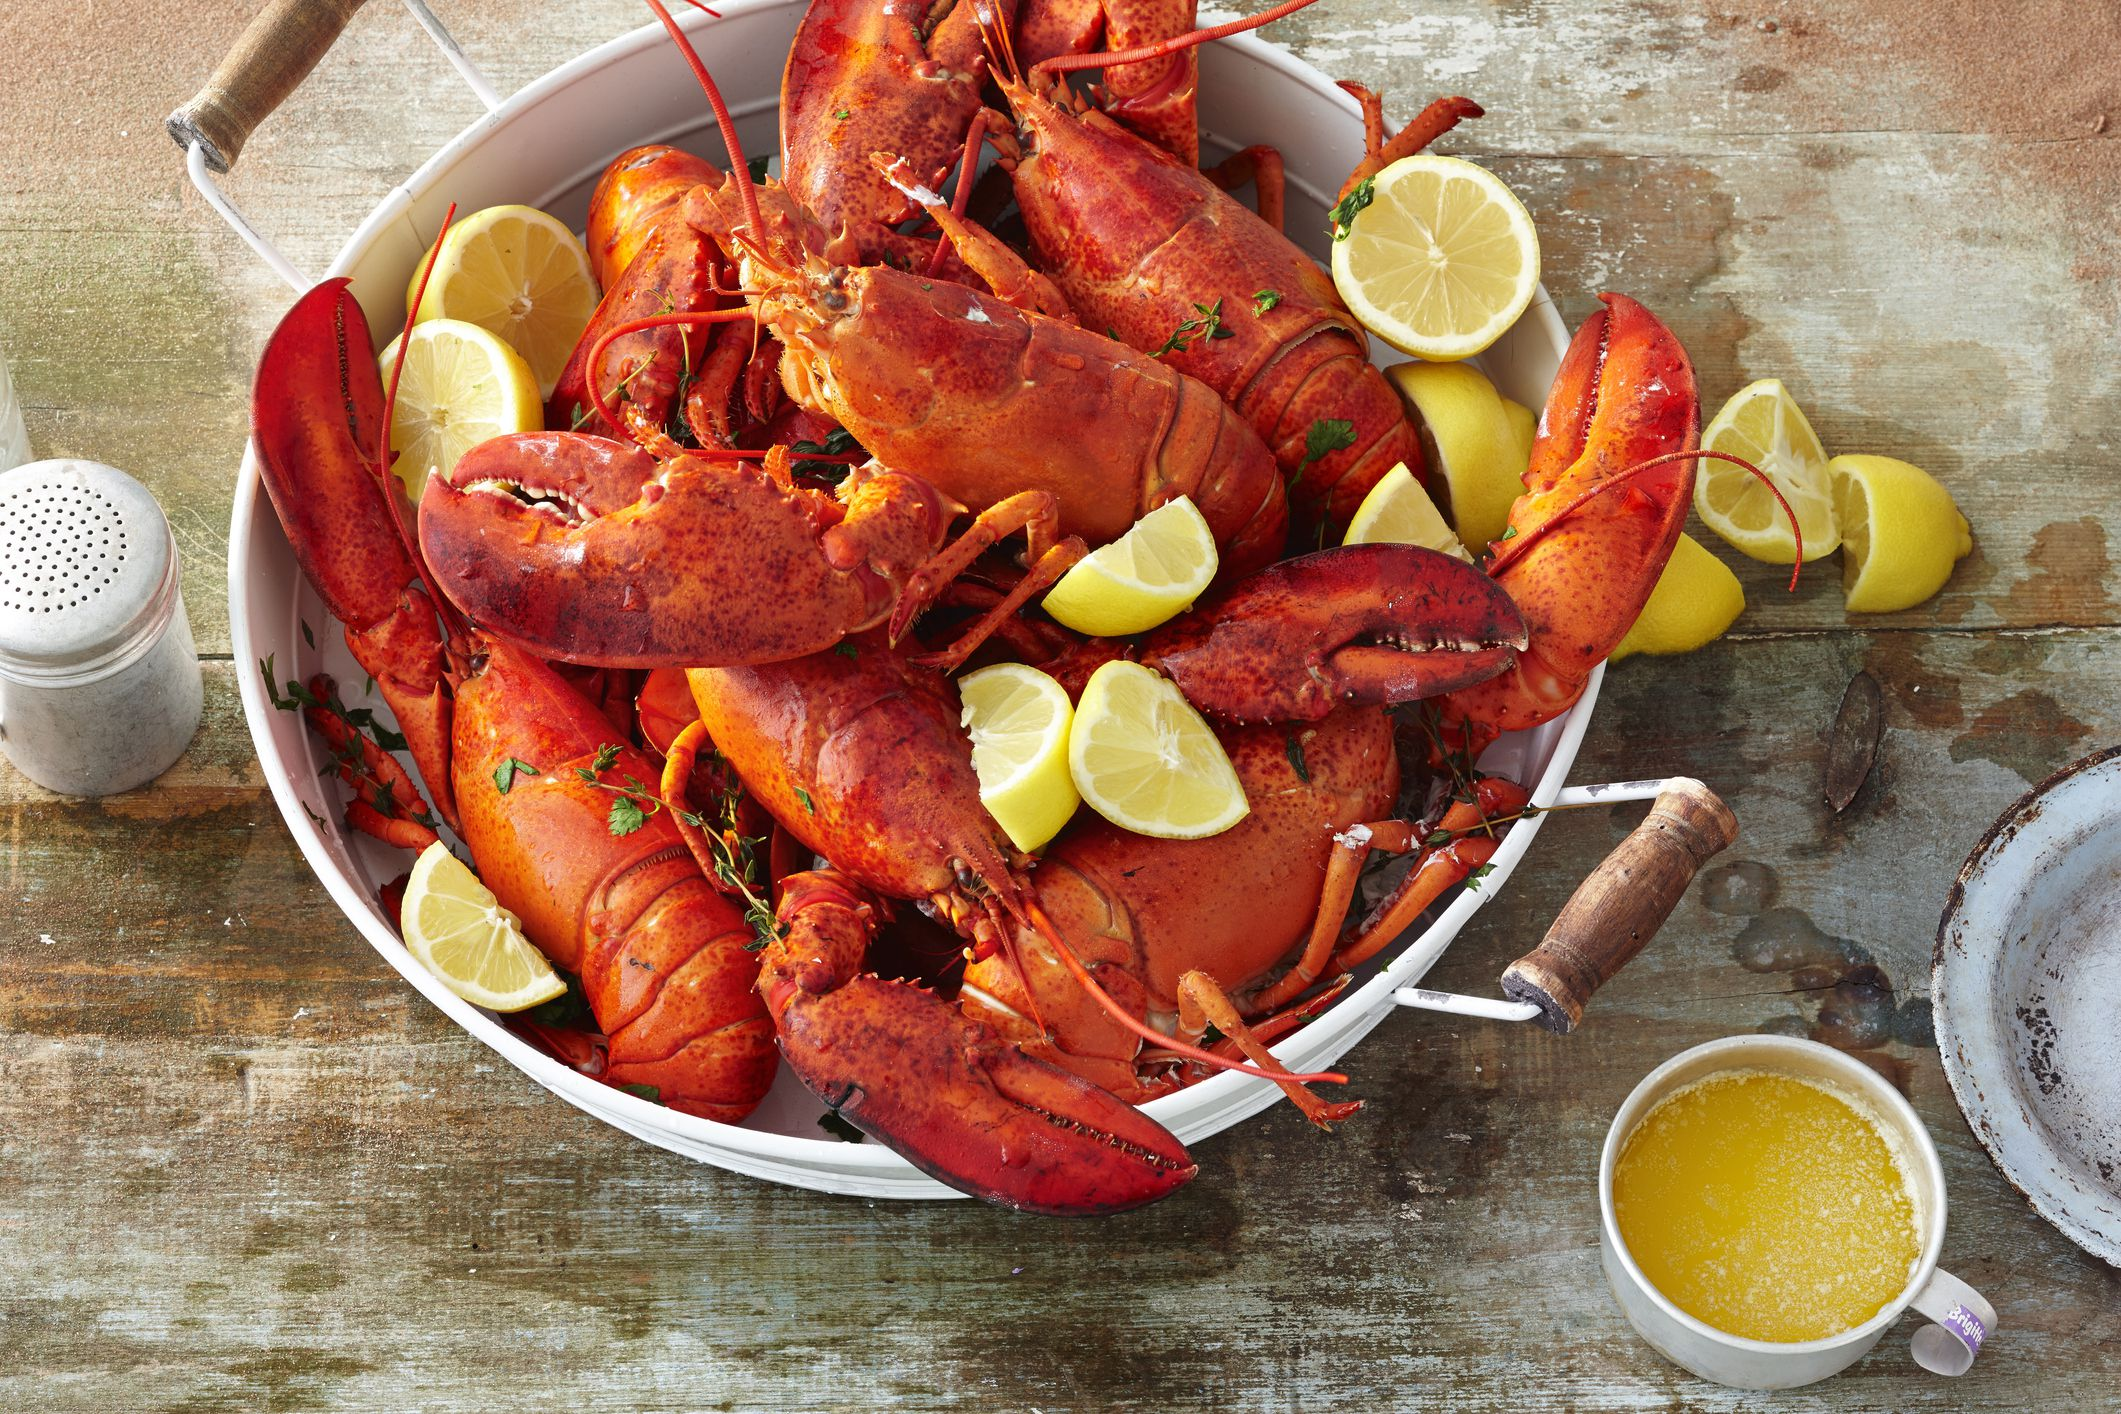 Get Live Lobsters Shipped from Maine